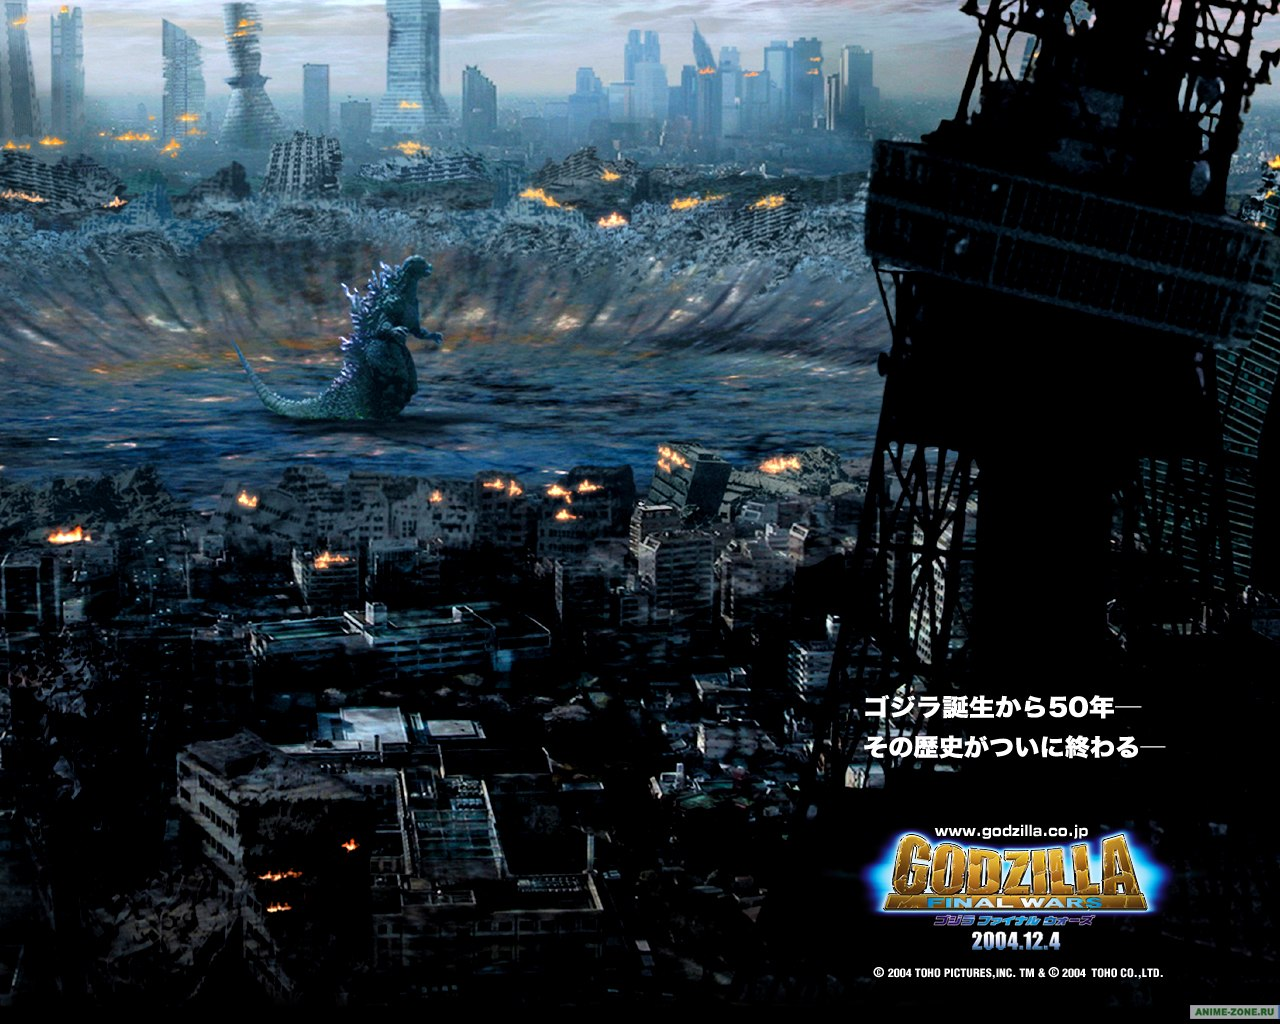 Godzilla Final Wars Images